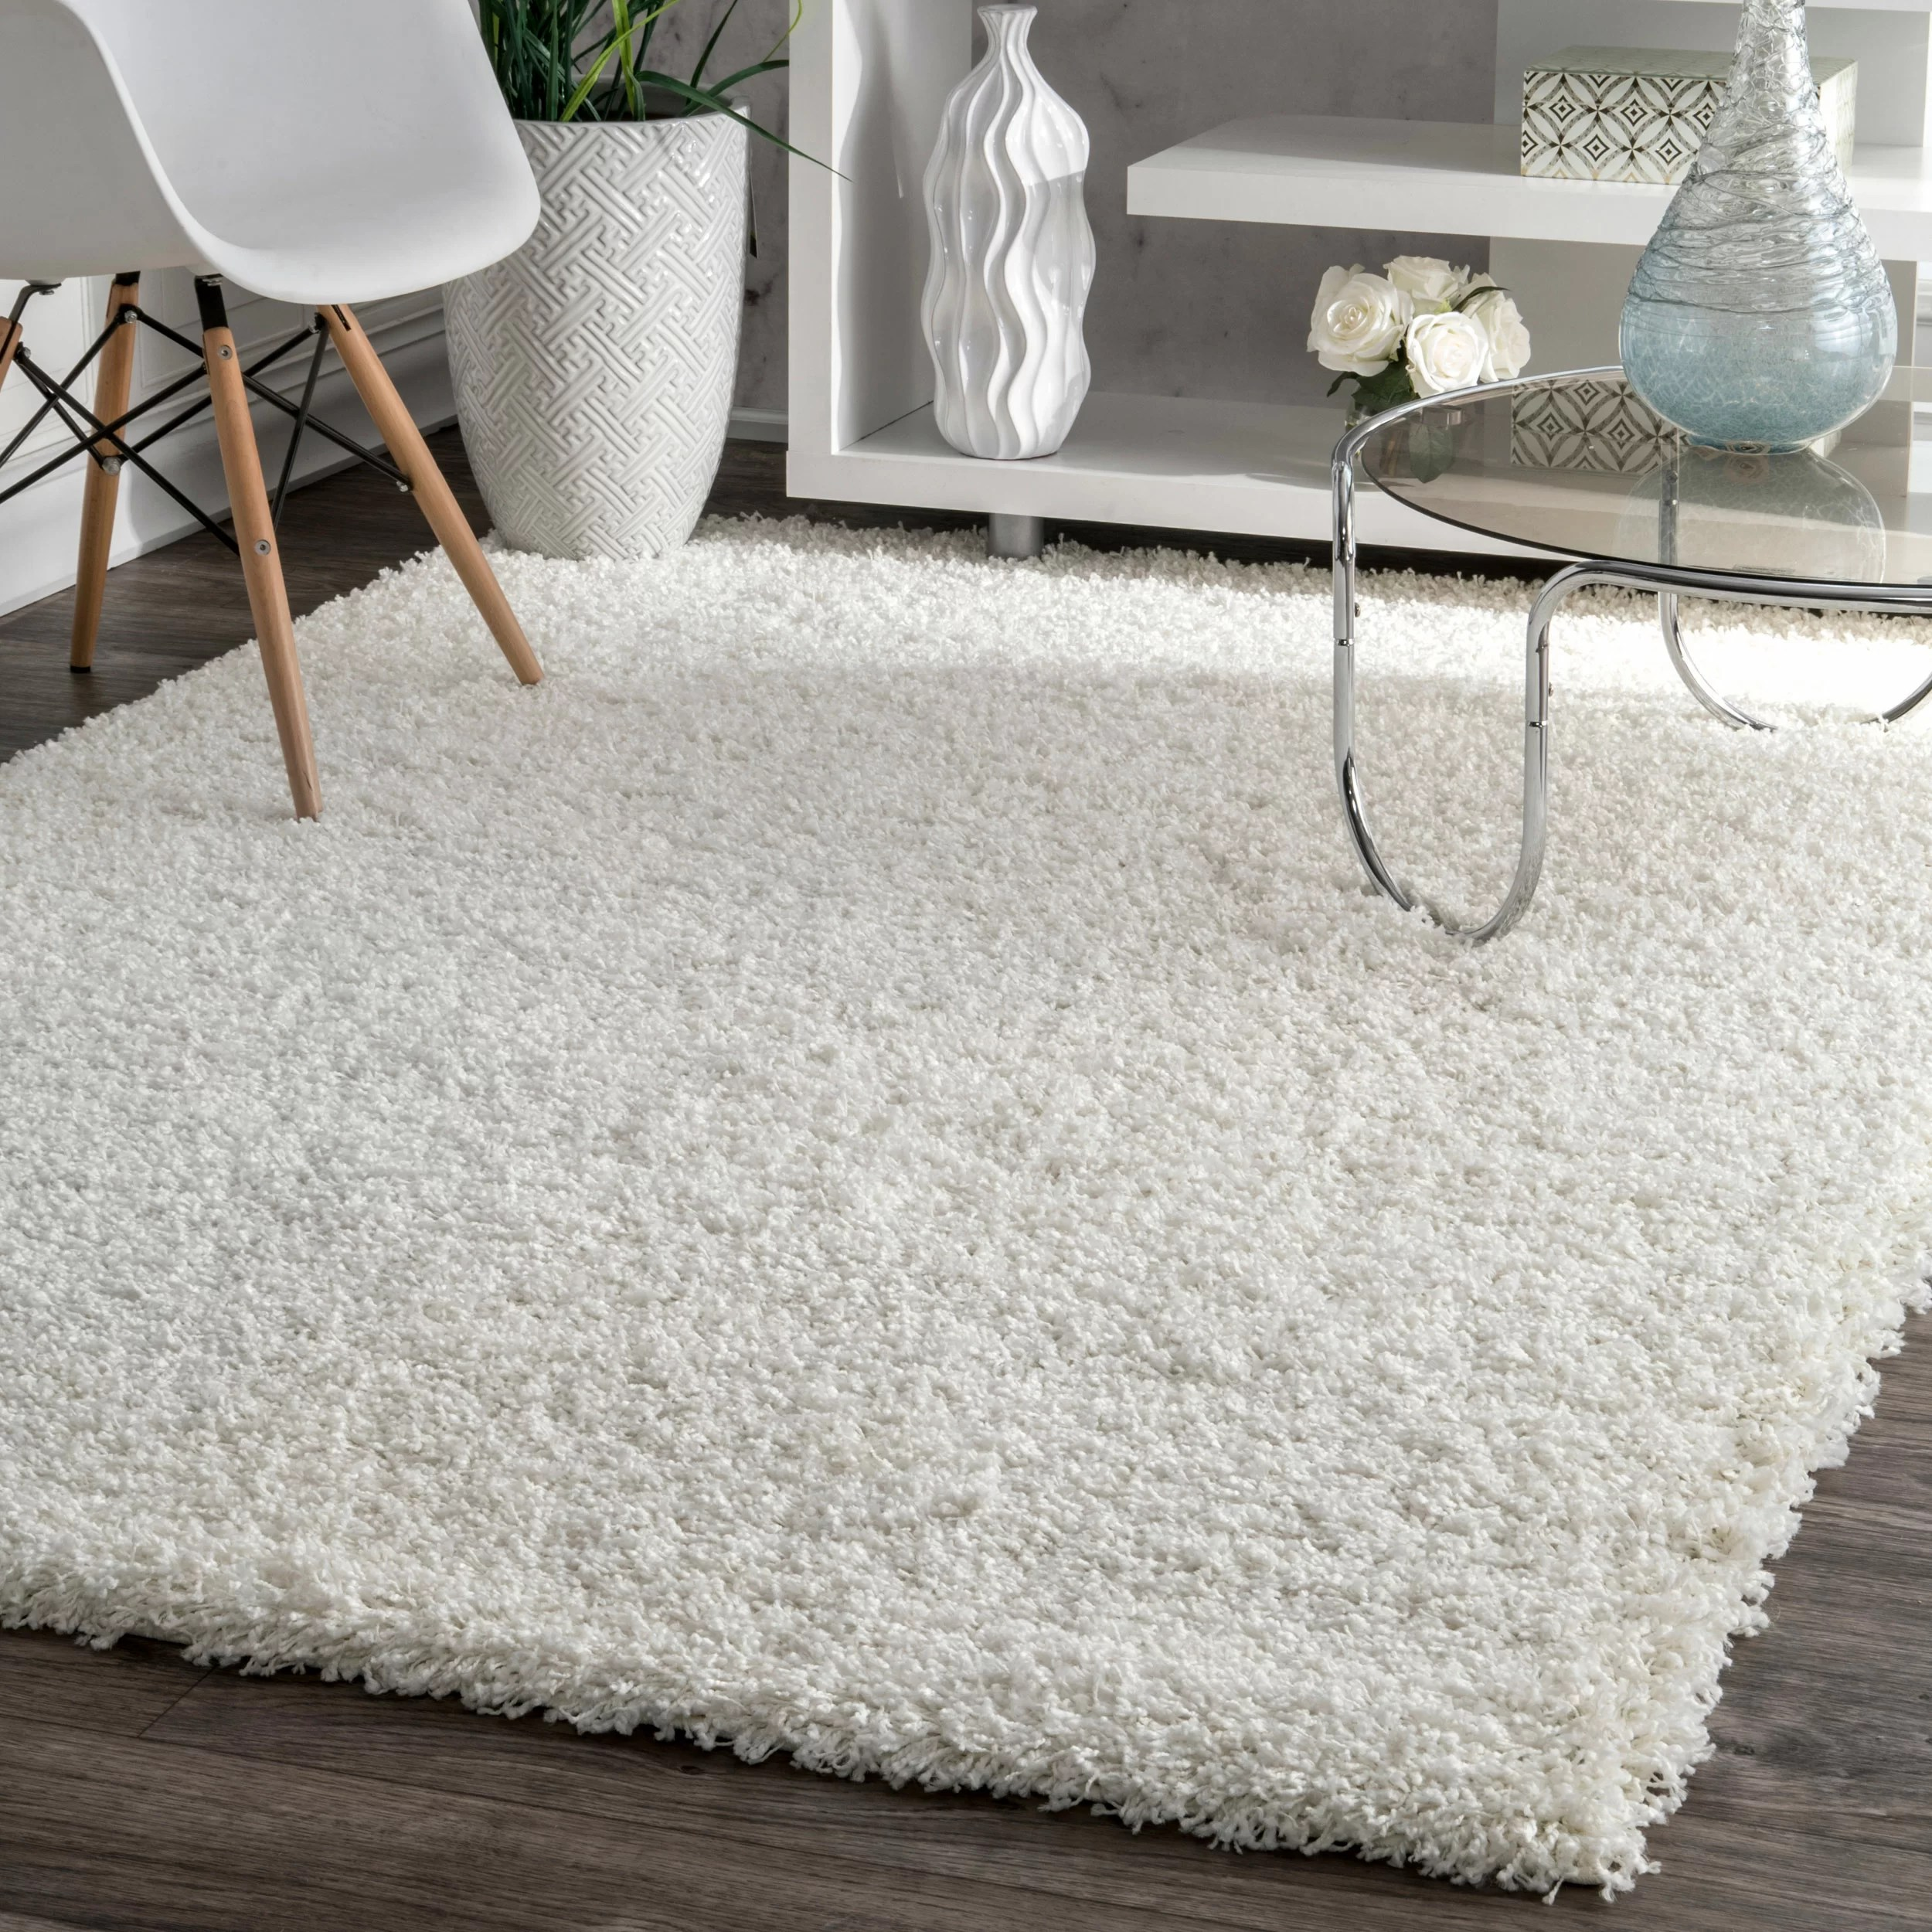 willa arlo interiors tapis a poil long blanc welford et commentaires wayfair ca